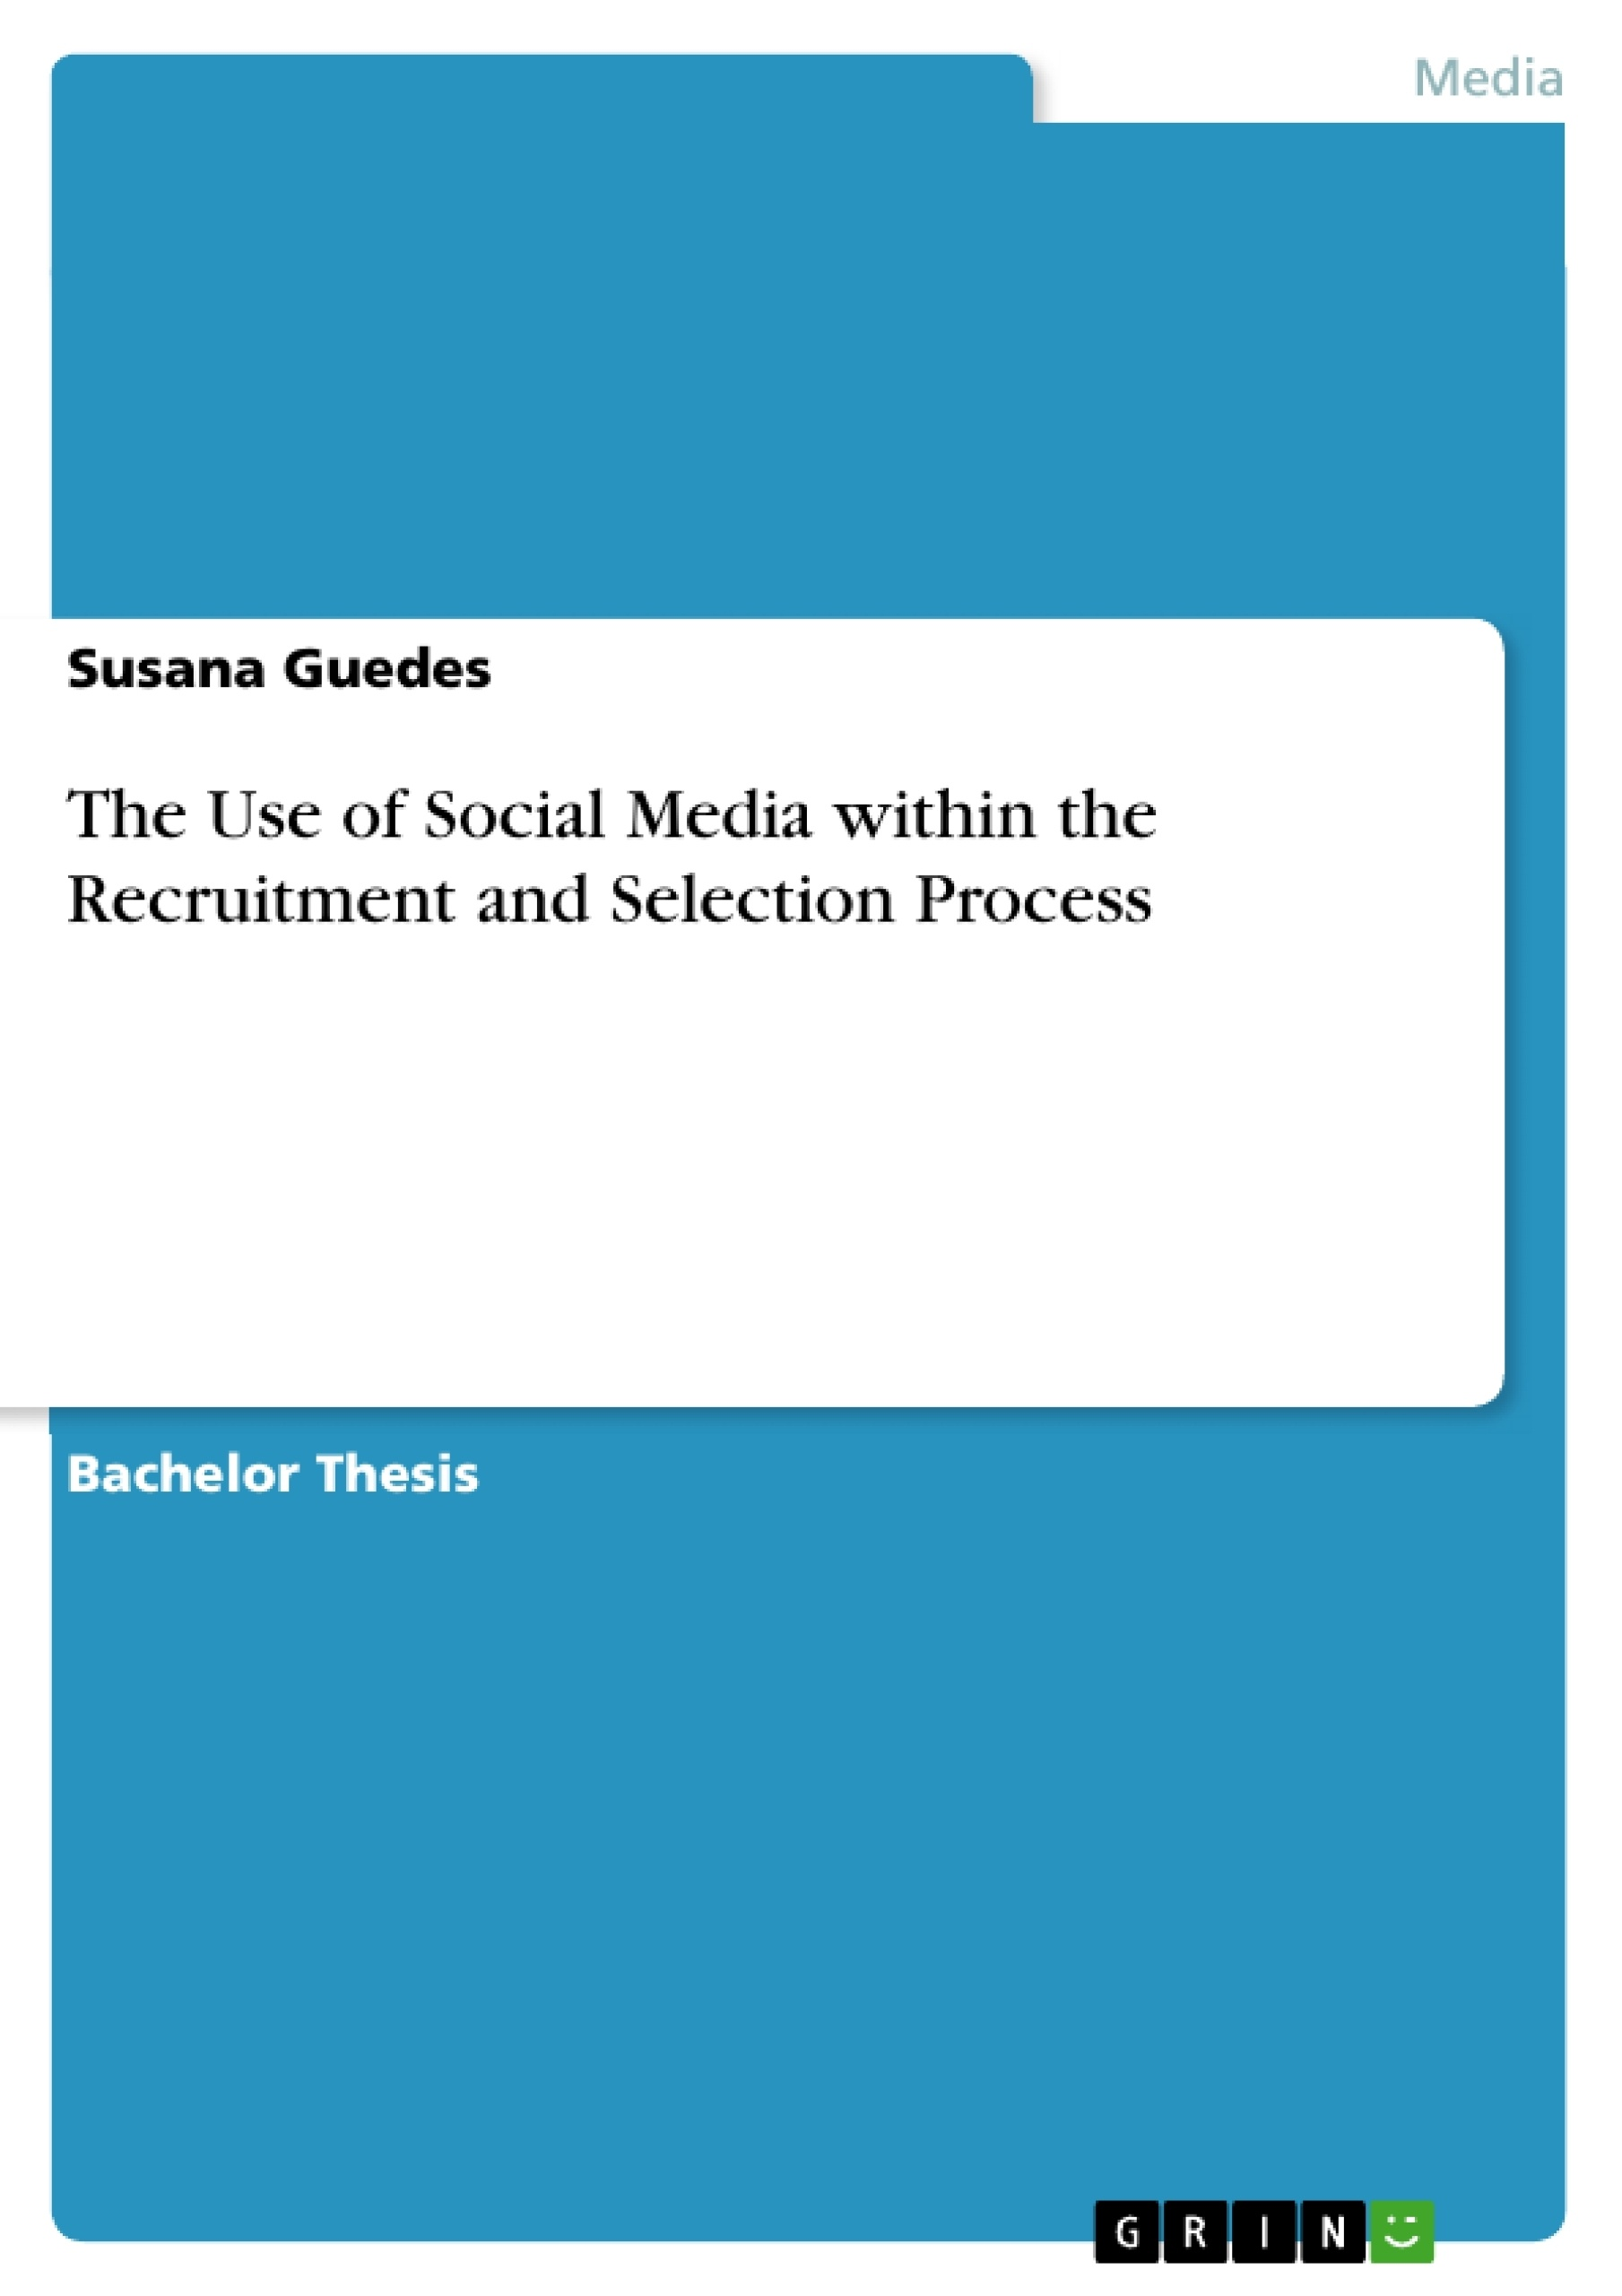 Title: The Use of Social Media within the Recruitment and Selection Process